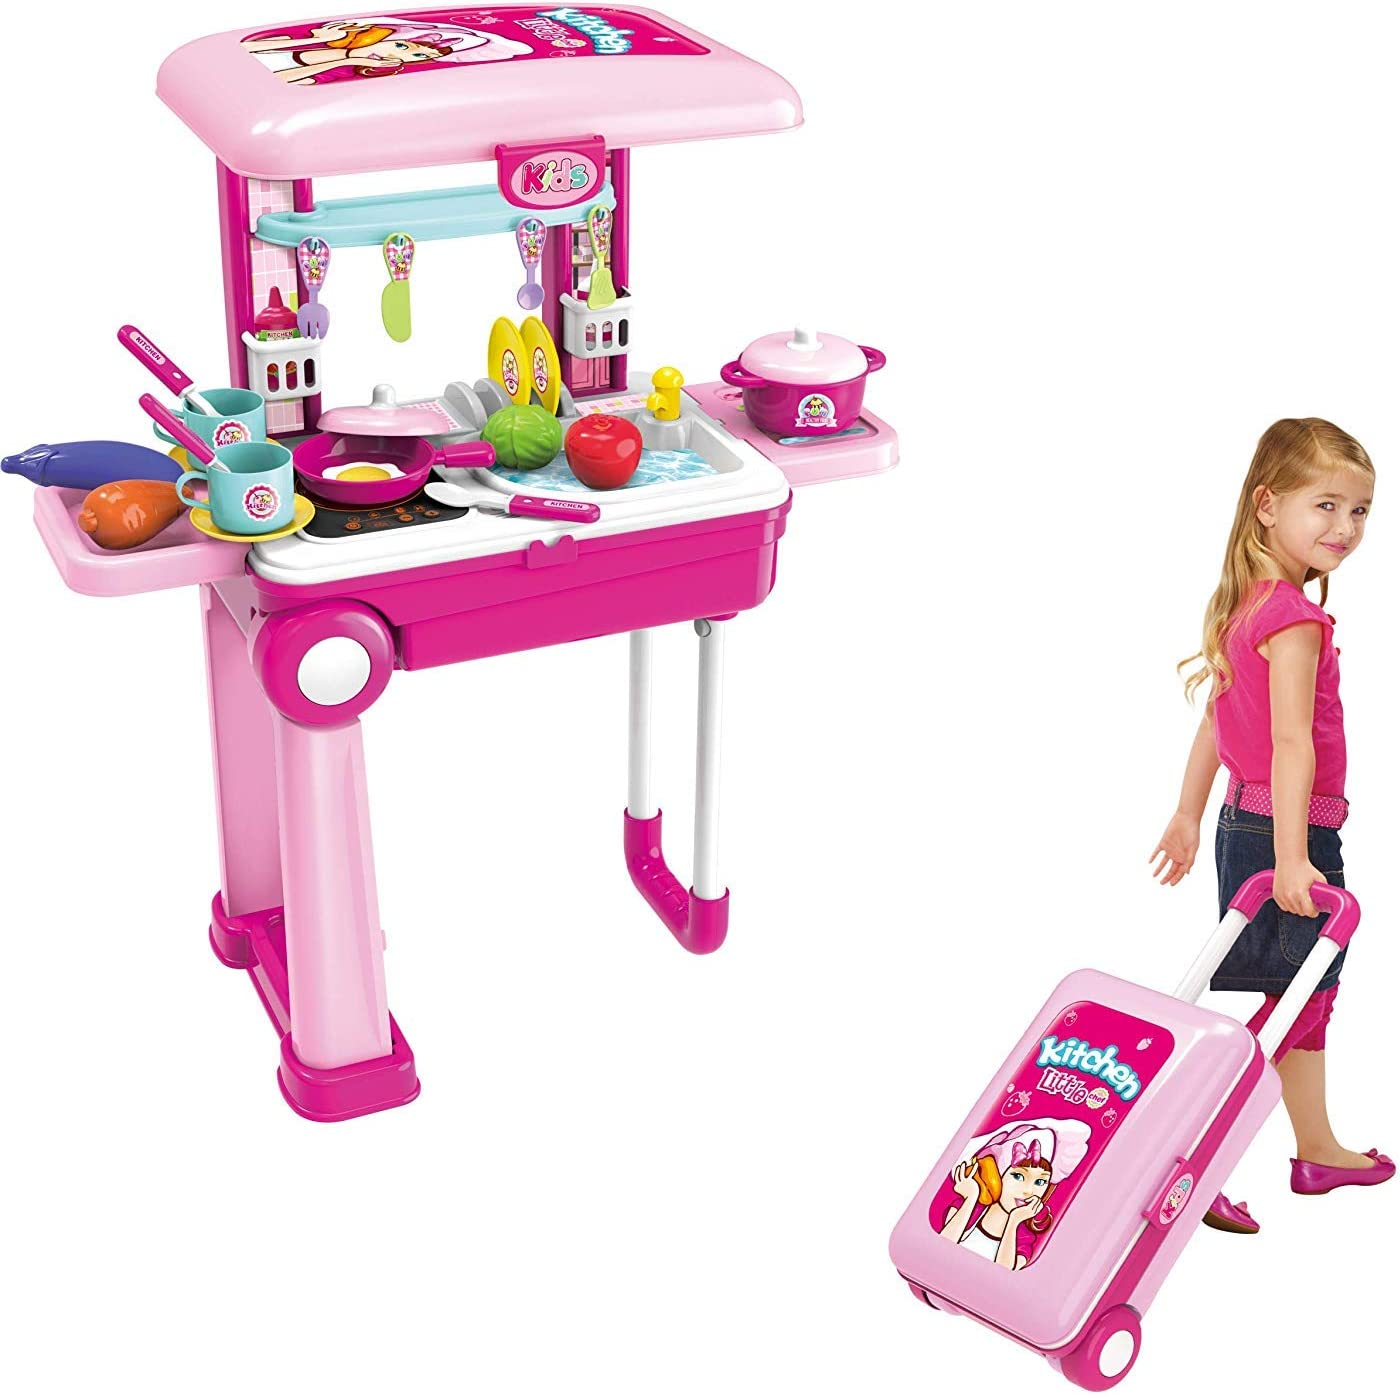 Artisan Sound /& Accessories JOYSAE Toys/&Gift 2 in 1 Toy Playset Travel Trolley Case w// Extended Handle Carrying Case Play Set Unisex Kitchen //Doctor//Dresser// Artisan//Craftsman Set Light